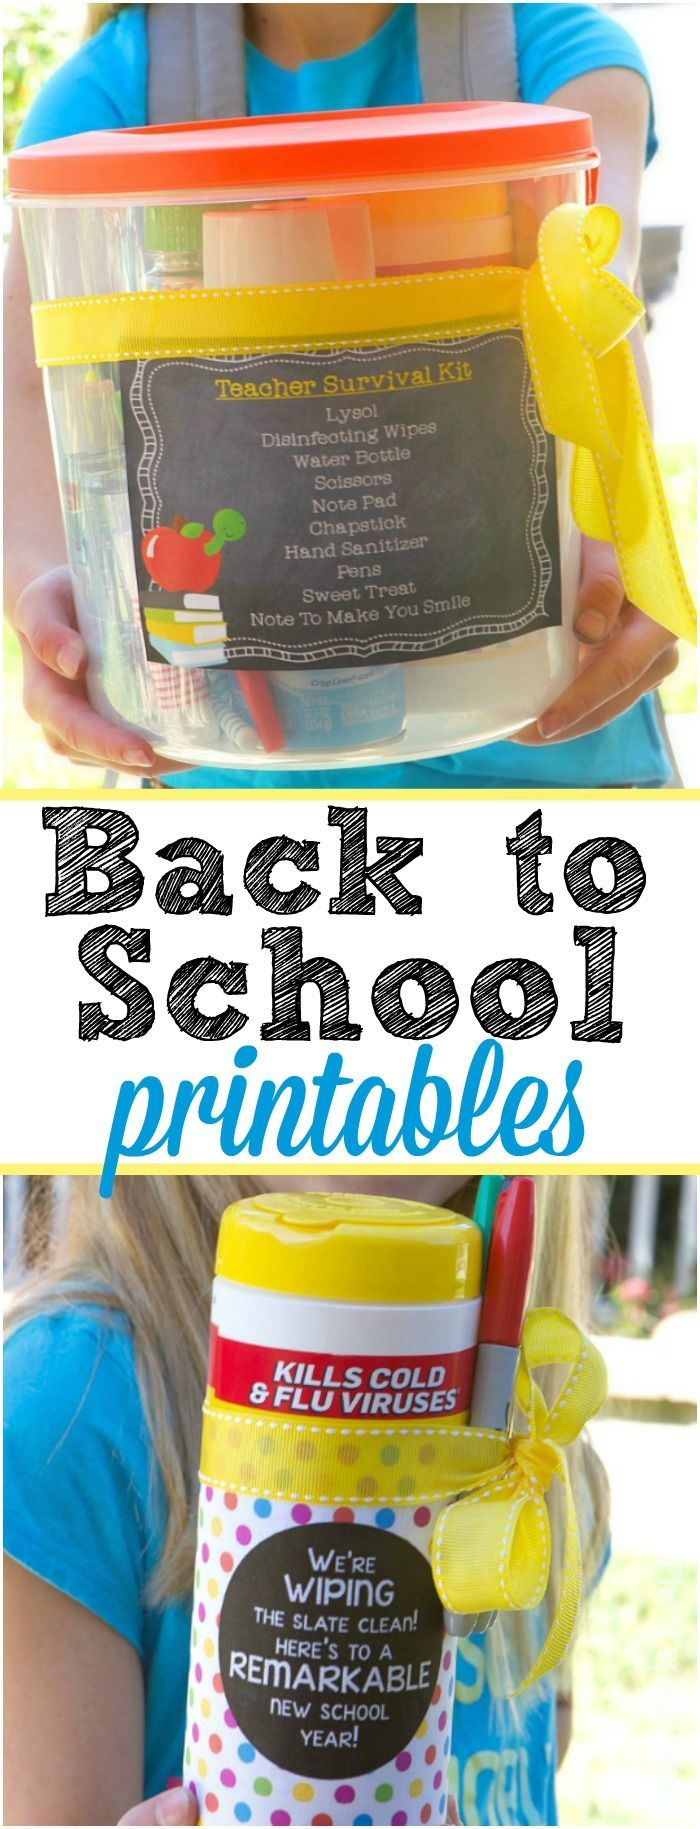 Pics photos funny college survival kit ideas - Back To School Teacher Survival Kit